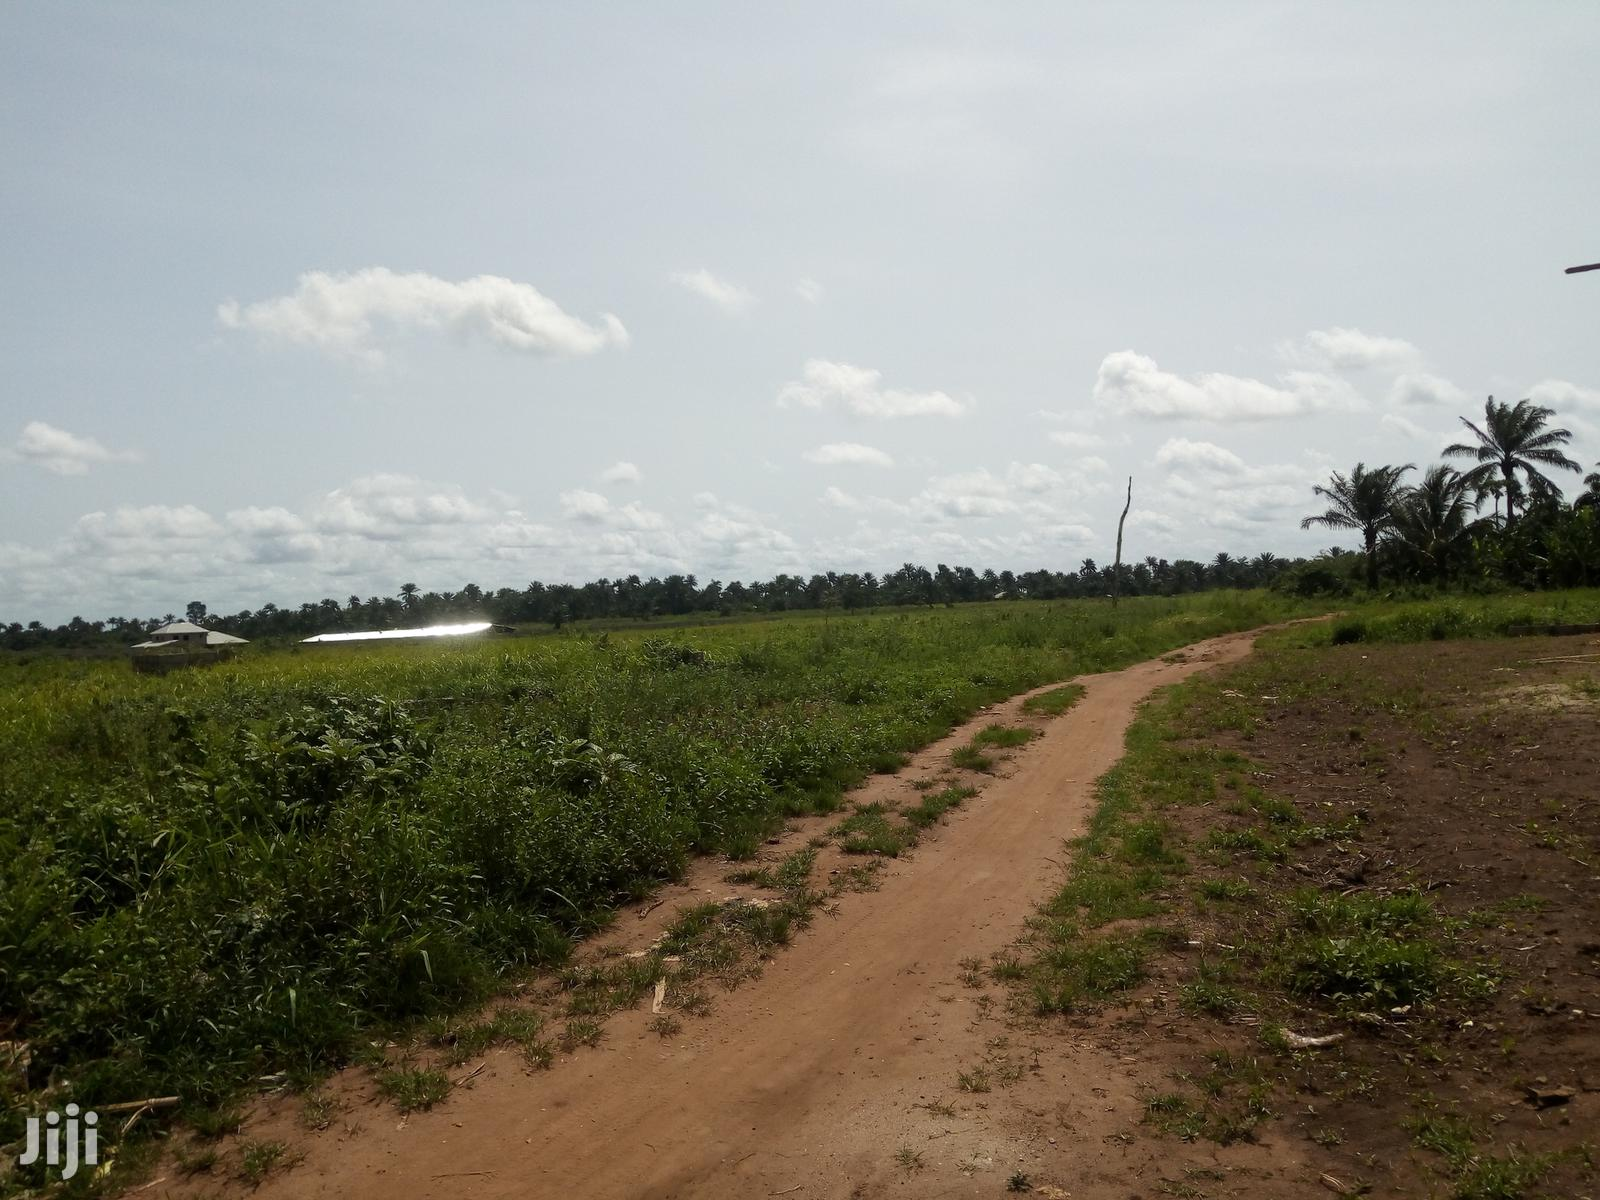 20 Acres Of Dry Land Available For Sale In Mowo (Badagry)   Land & Plots For Sale for sale in Badagry, Lagos State, Nigeria